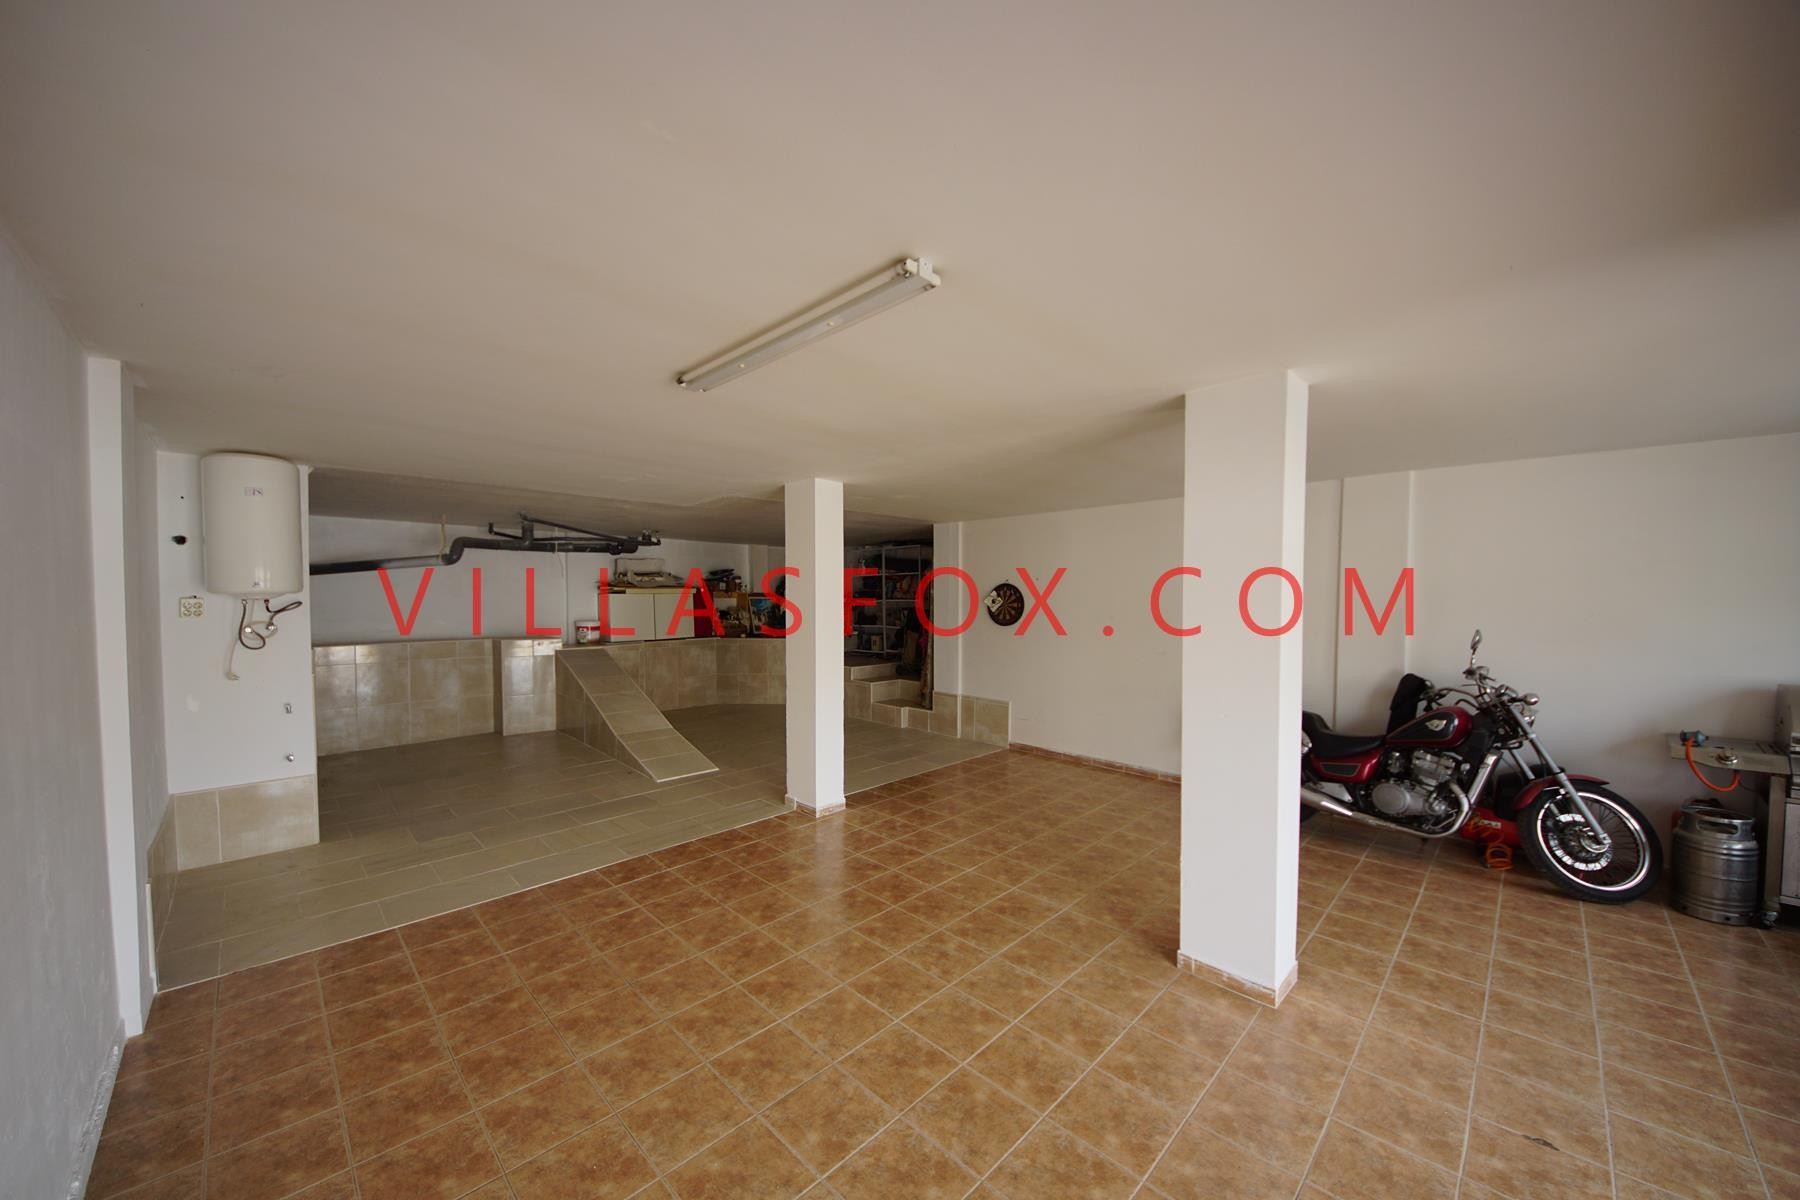 3 bedroom detached villa with large garage, communal pool, Orihuela Costa